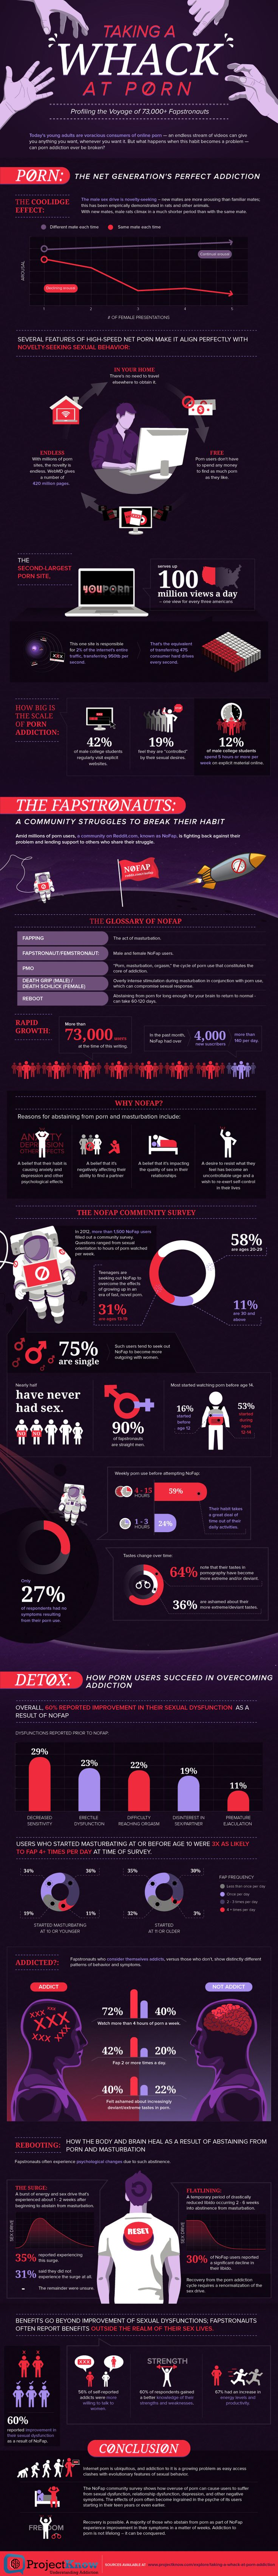 7 best infographics people images on pinterest | info graphics